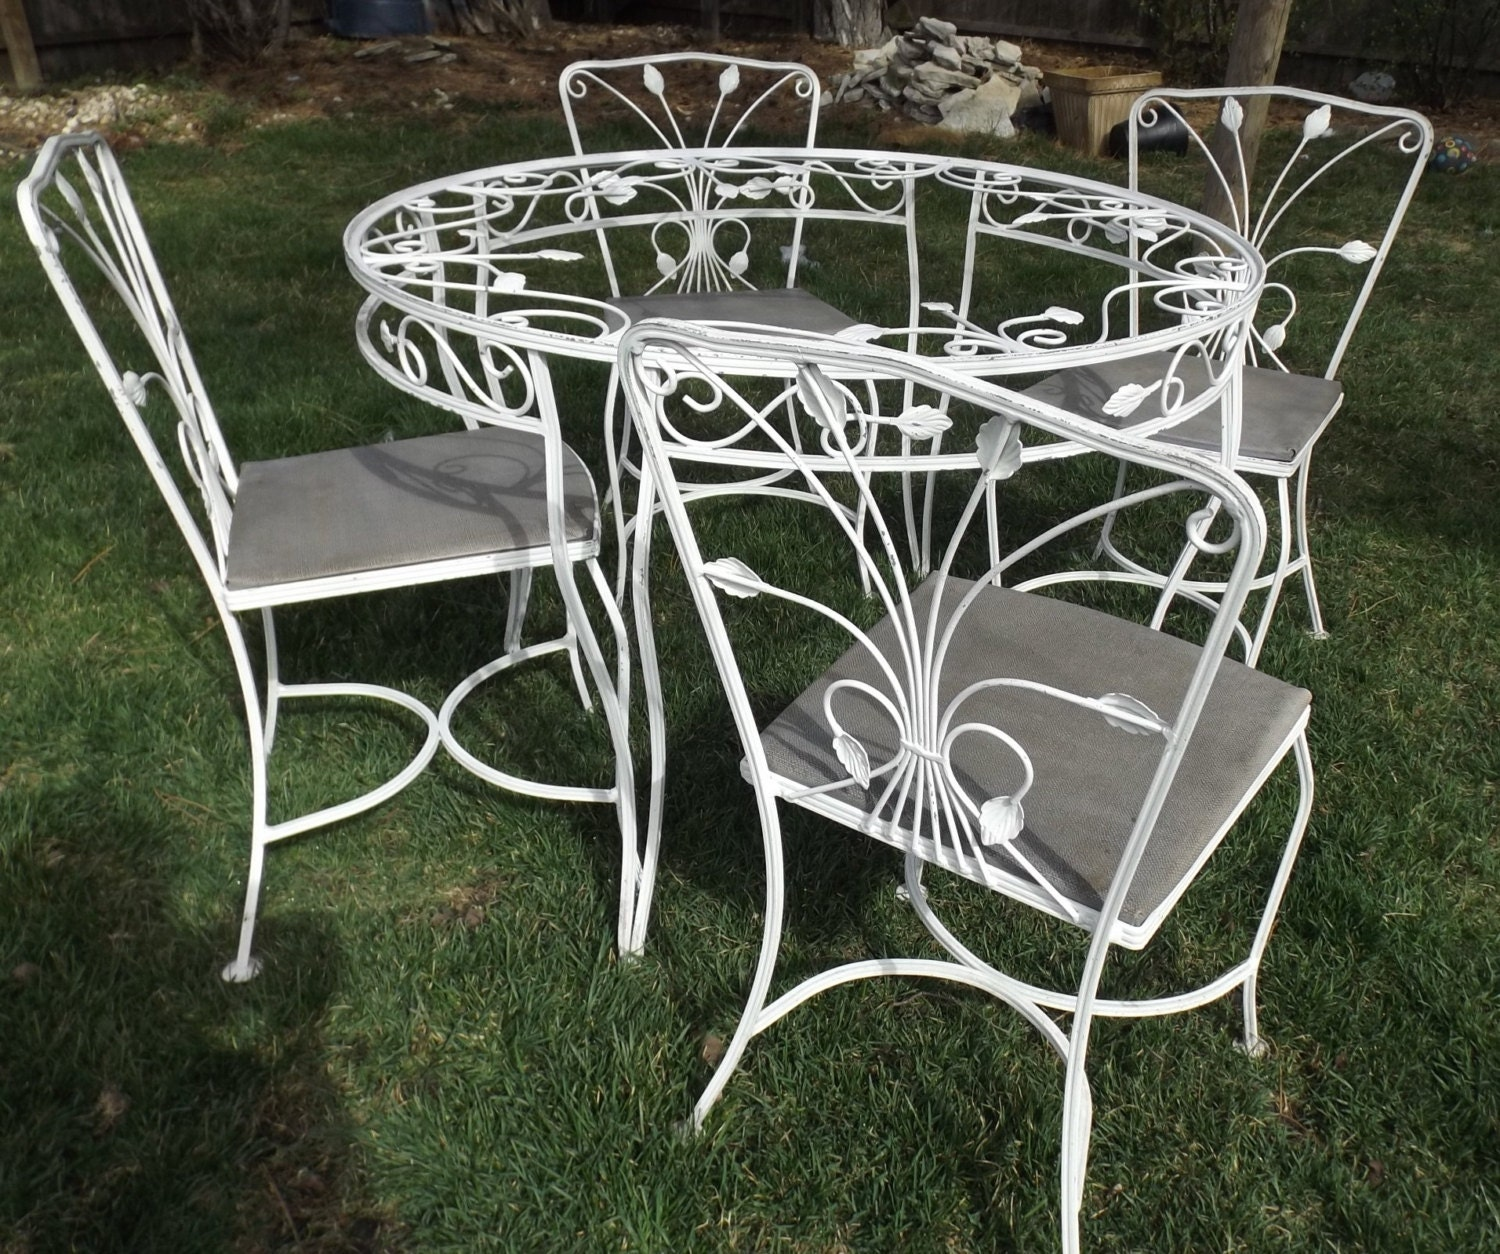 Vintage wrought iron white garden patio table 4 chairs ivy for Metal patio sets for sale